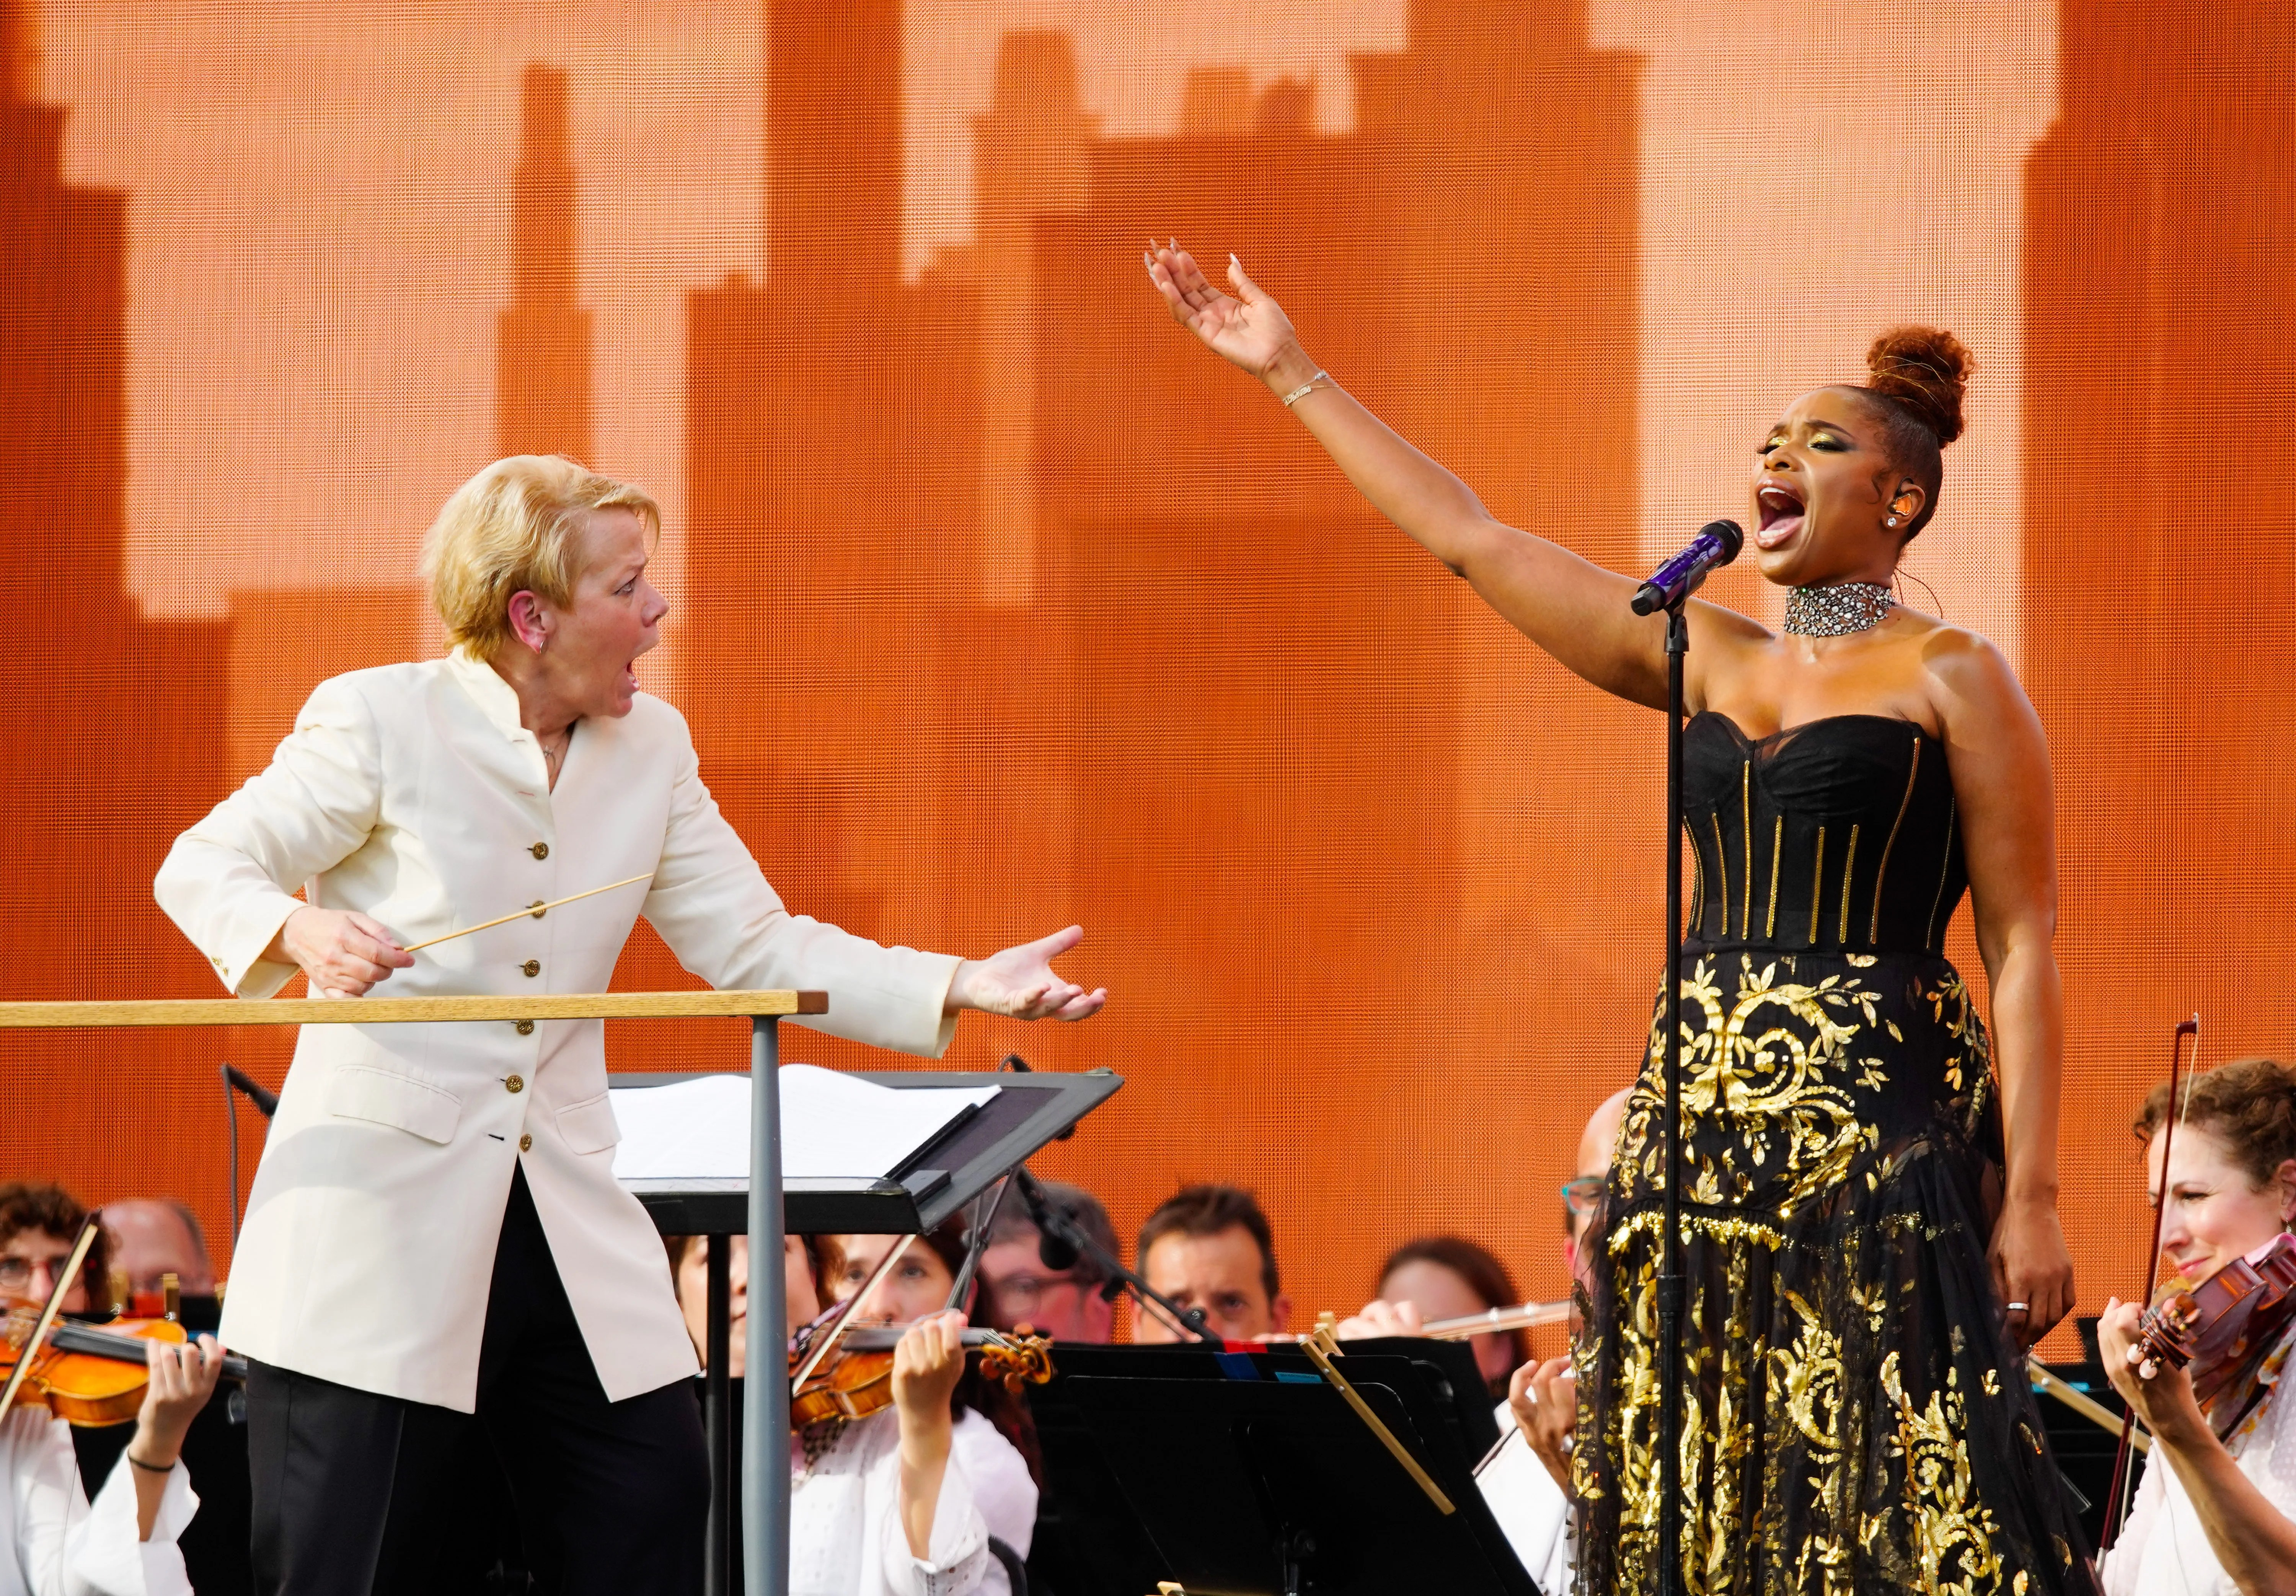 Jennifer Hudson performs with the New York Philharmonic (conducted by Marin Alsop) during the We Love NYC: The Homecoming Concert at Central Park, Great Lawn on Aug. 21, 2021 in New York City.